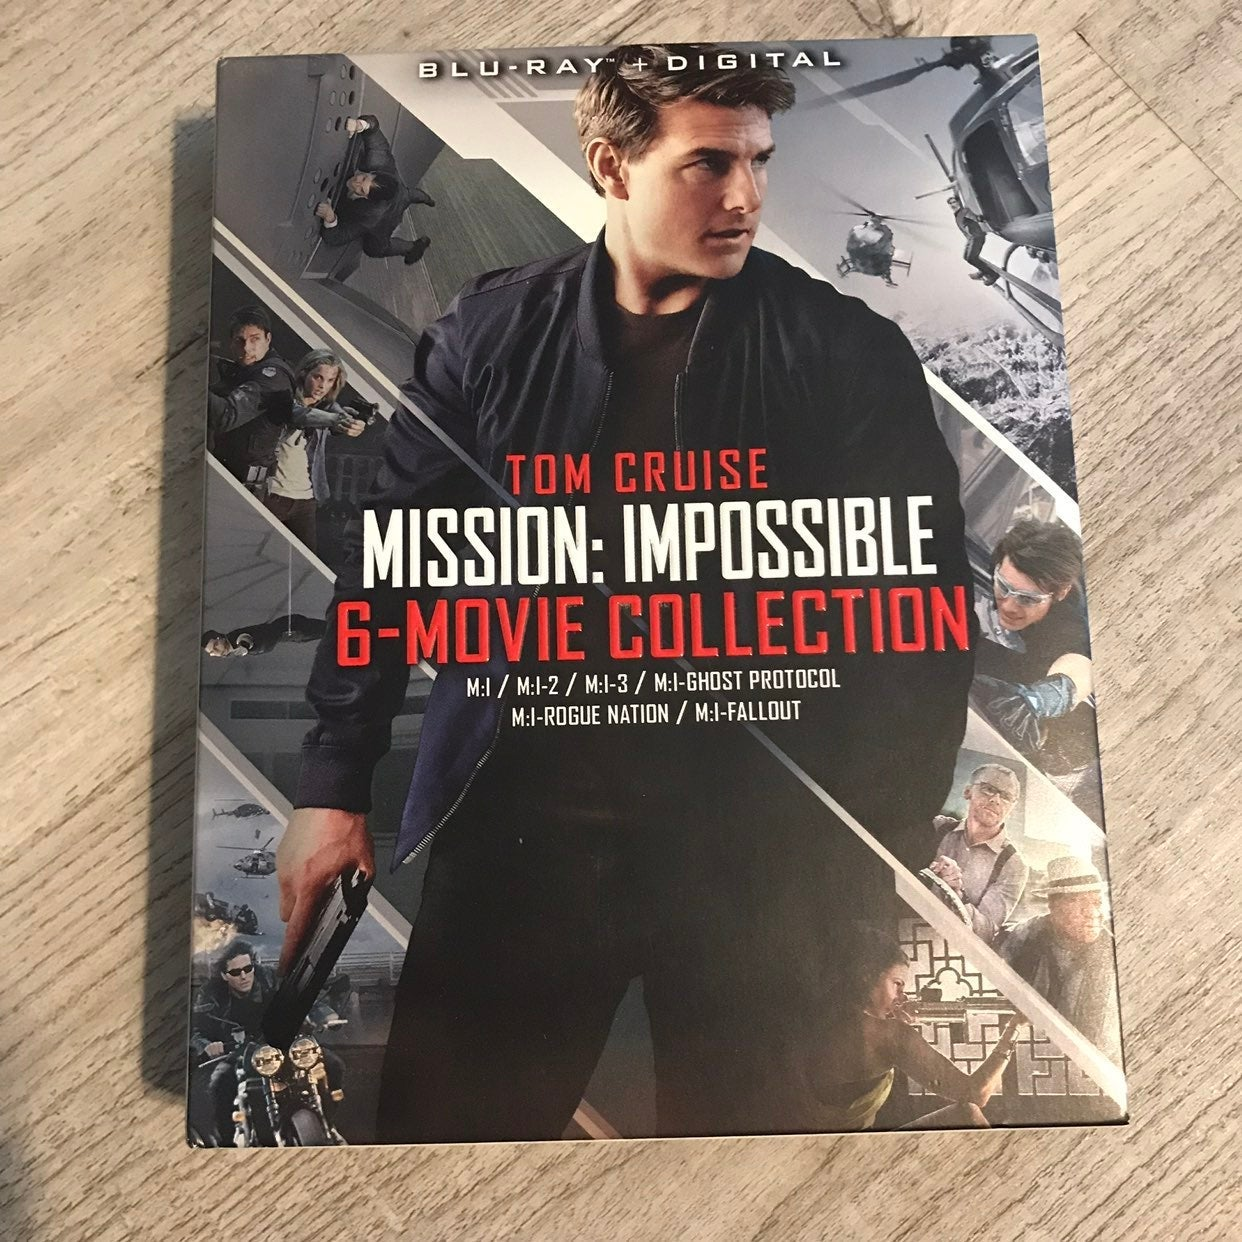 Mission Impossible: 6 Movie Collection